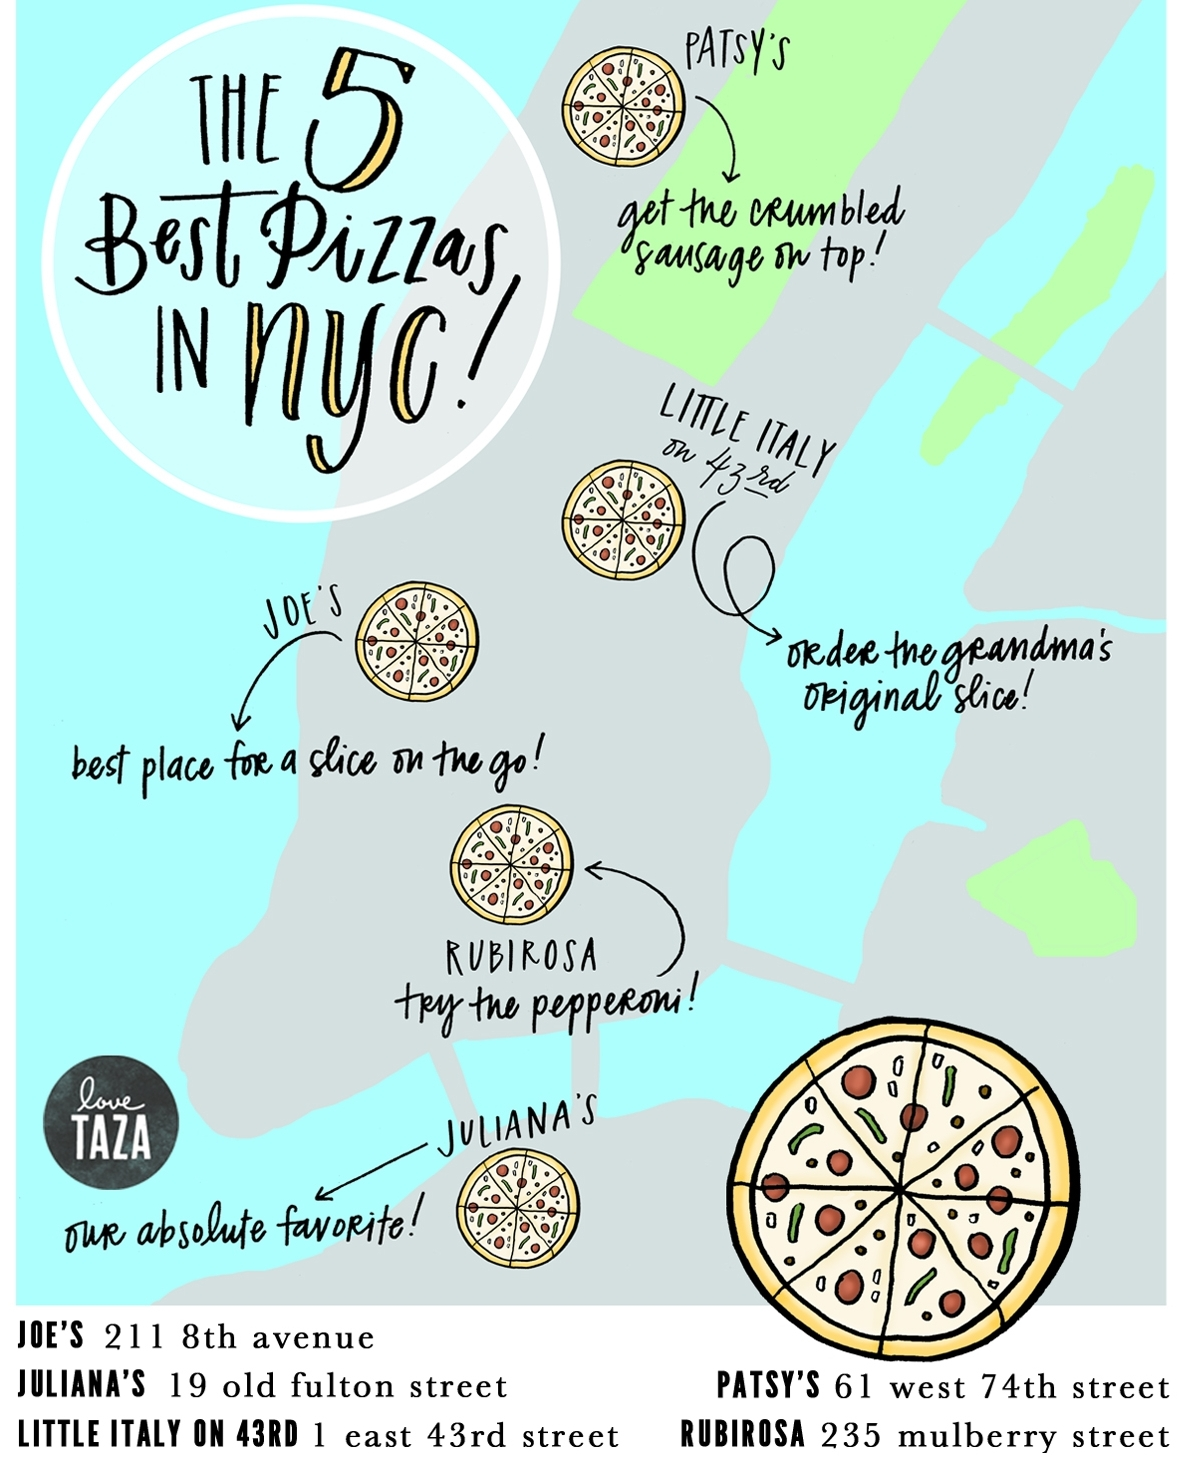 pizza map for Love Taza